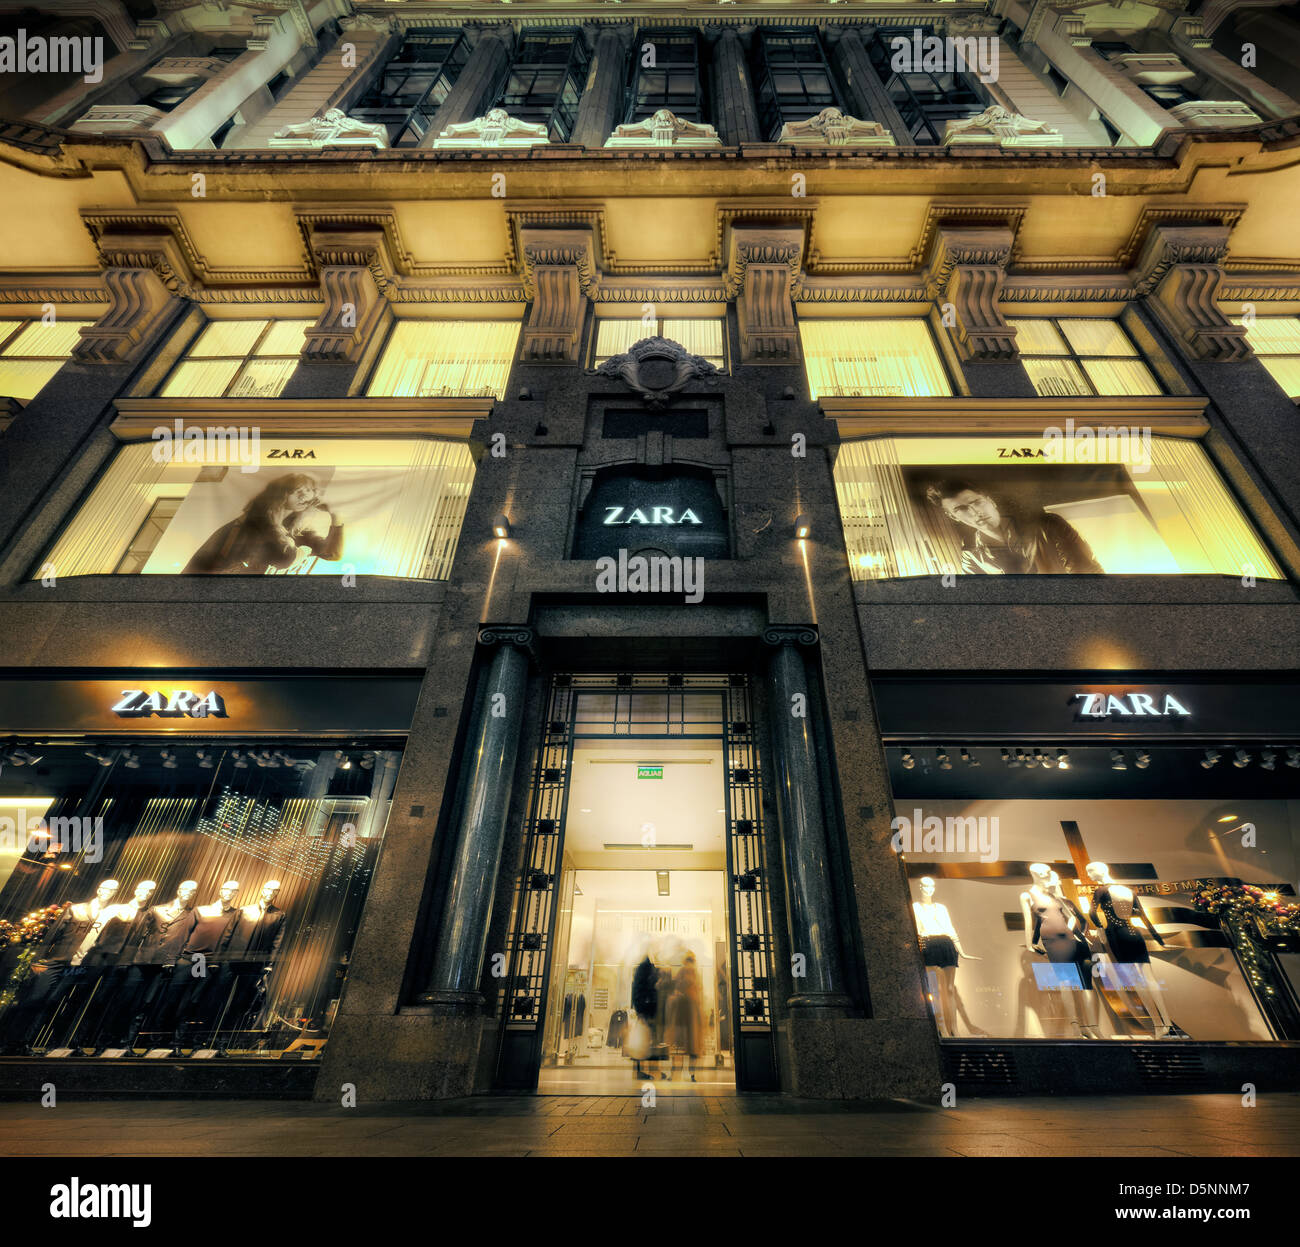 09e35f1c Zara Store Spain Stock Photos & Zara Store Spain Stock Images - Alamy